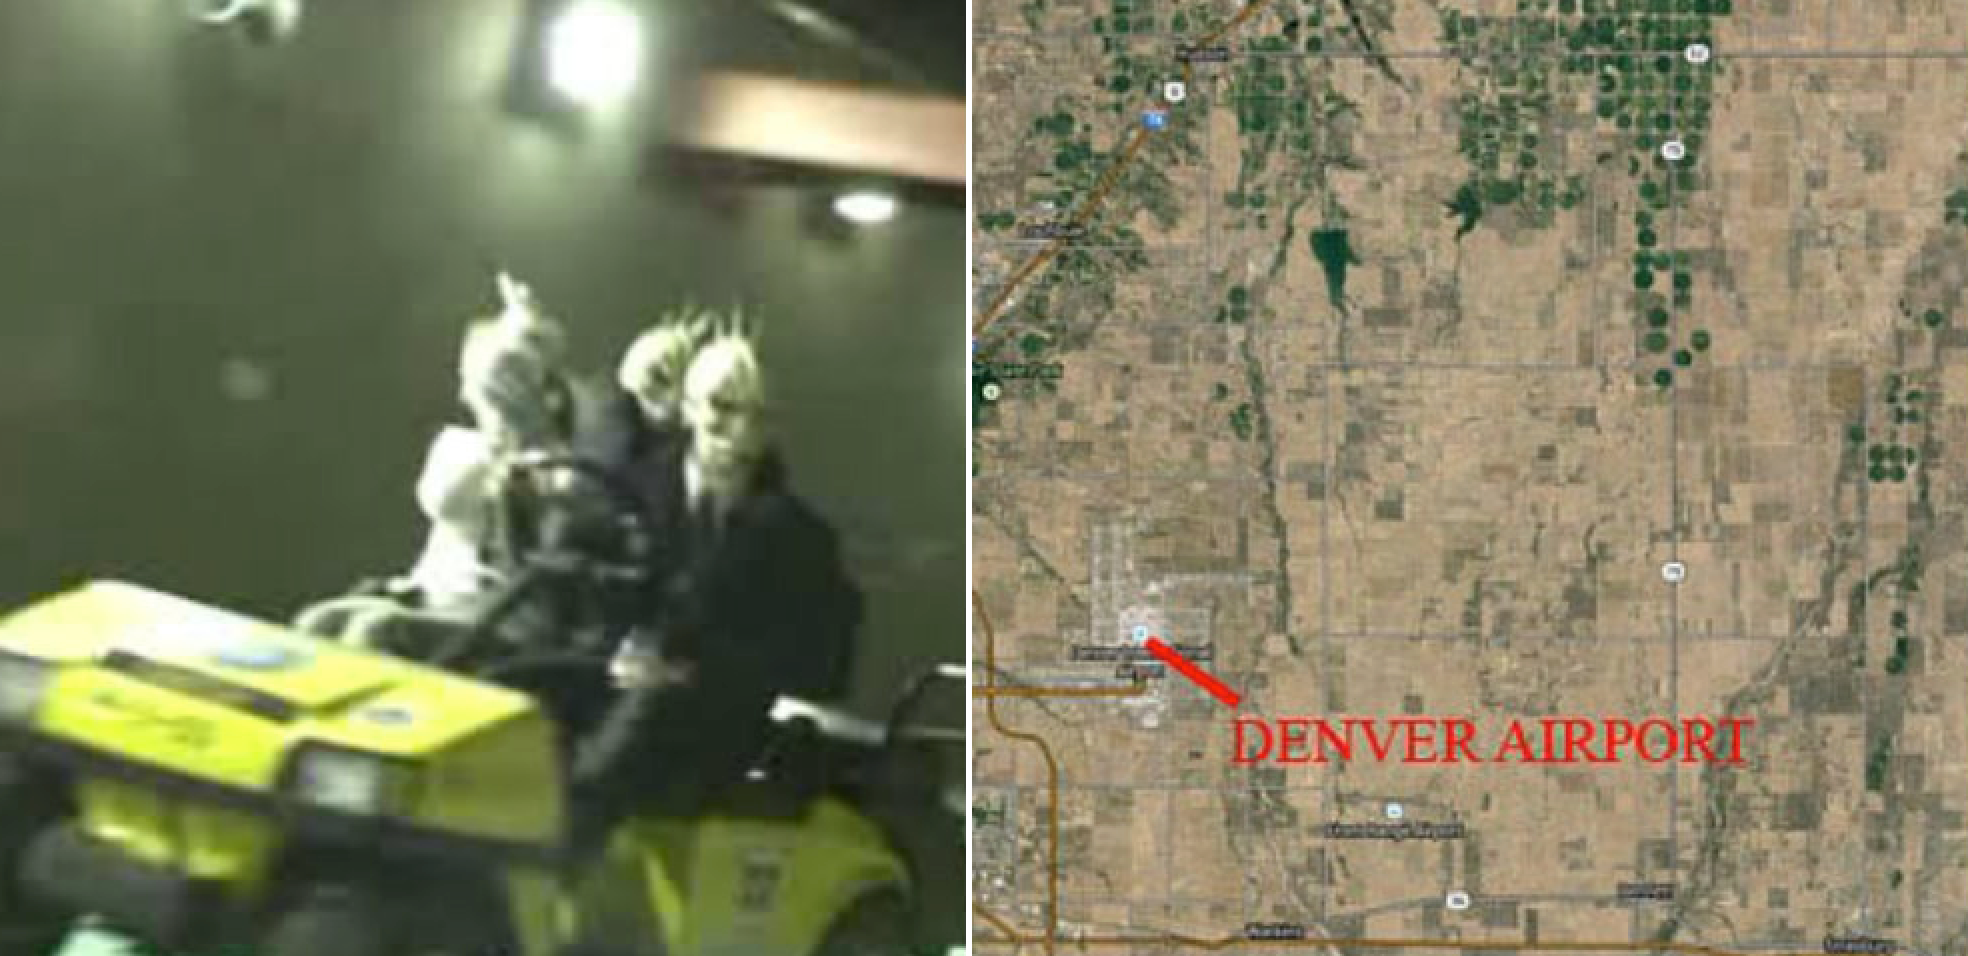 Creepy facts about the denver airport conspiracy therichest malvernweather Gallery